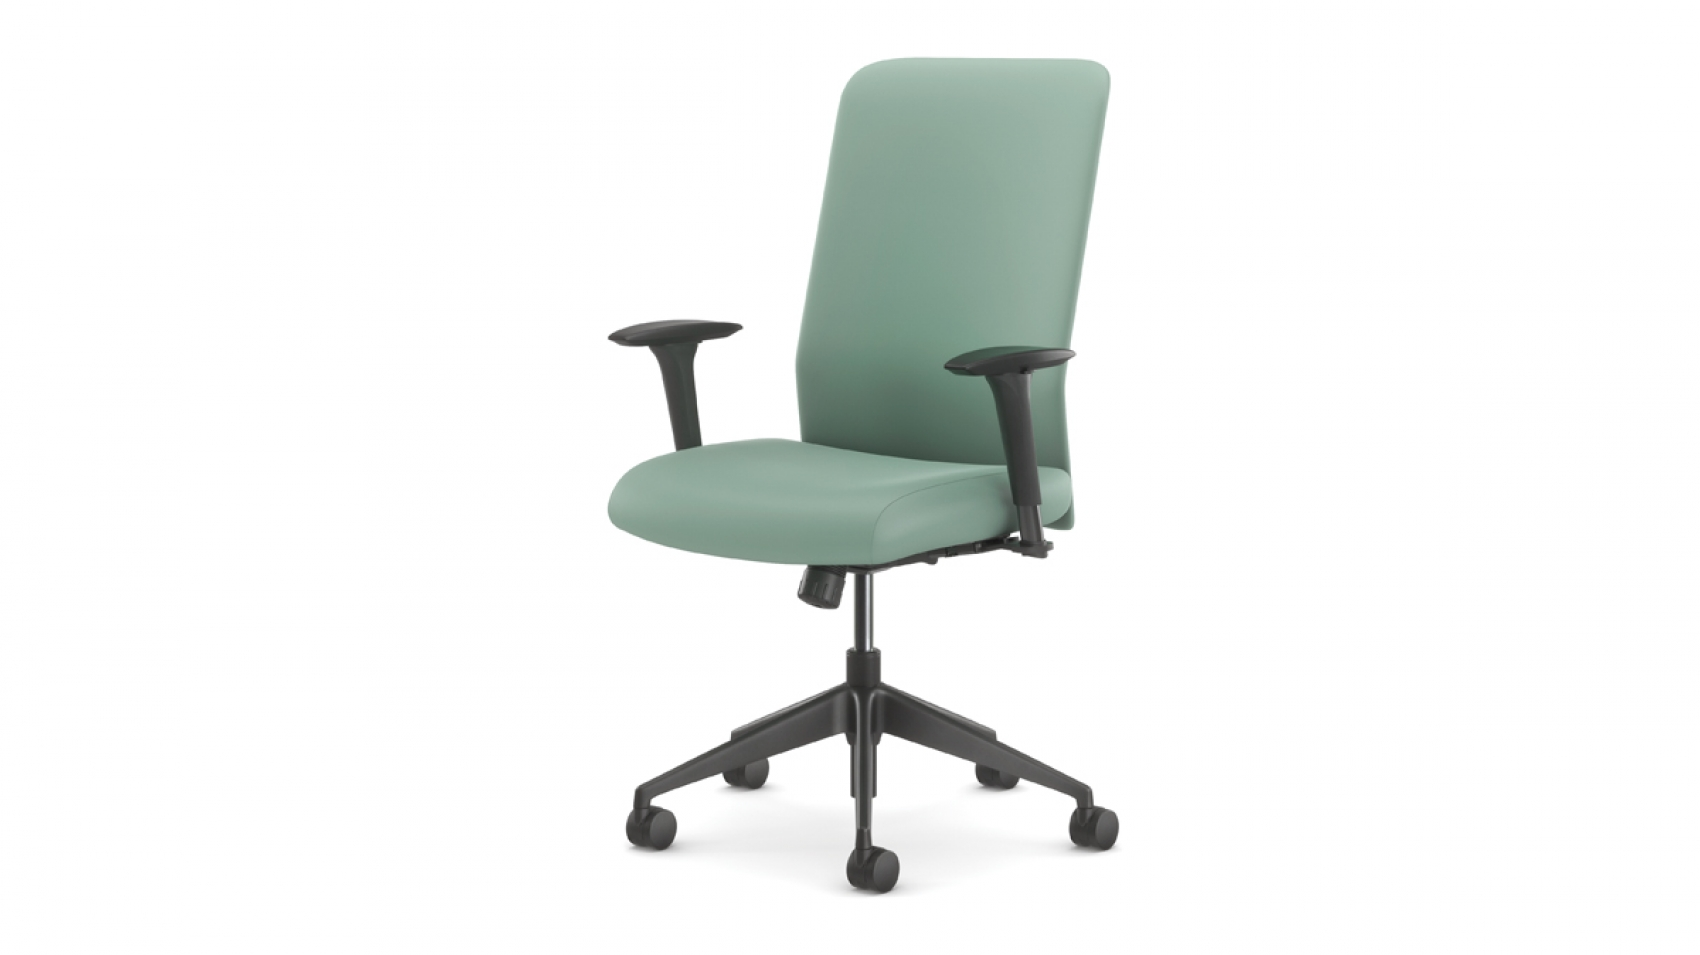 ergonomic chair criteria desk knees wow highmark modela2 office chairs seating made simple